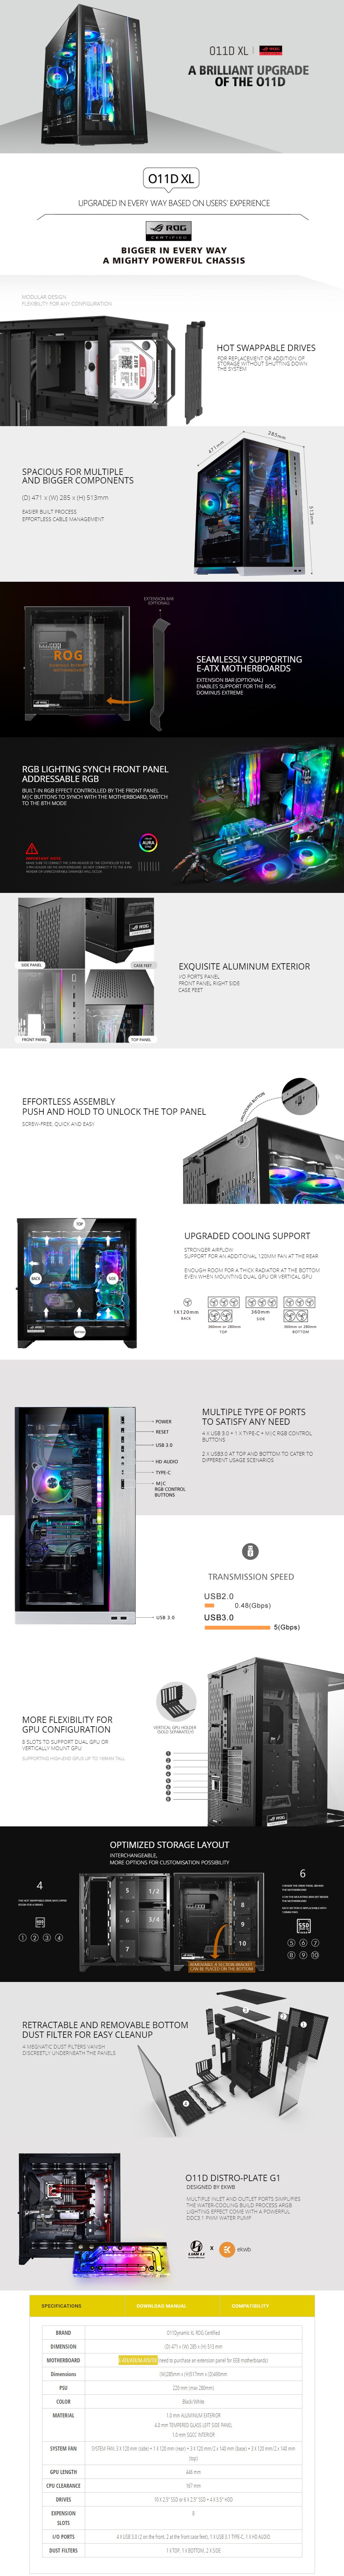 Lian-Li PC-011 Dynamic XL RGB Tempered Glass E-ATX ROG Full Tower Case - White - Overview 1